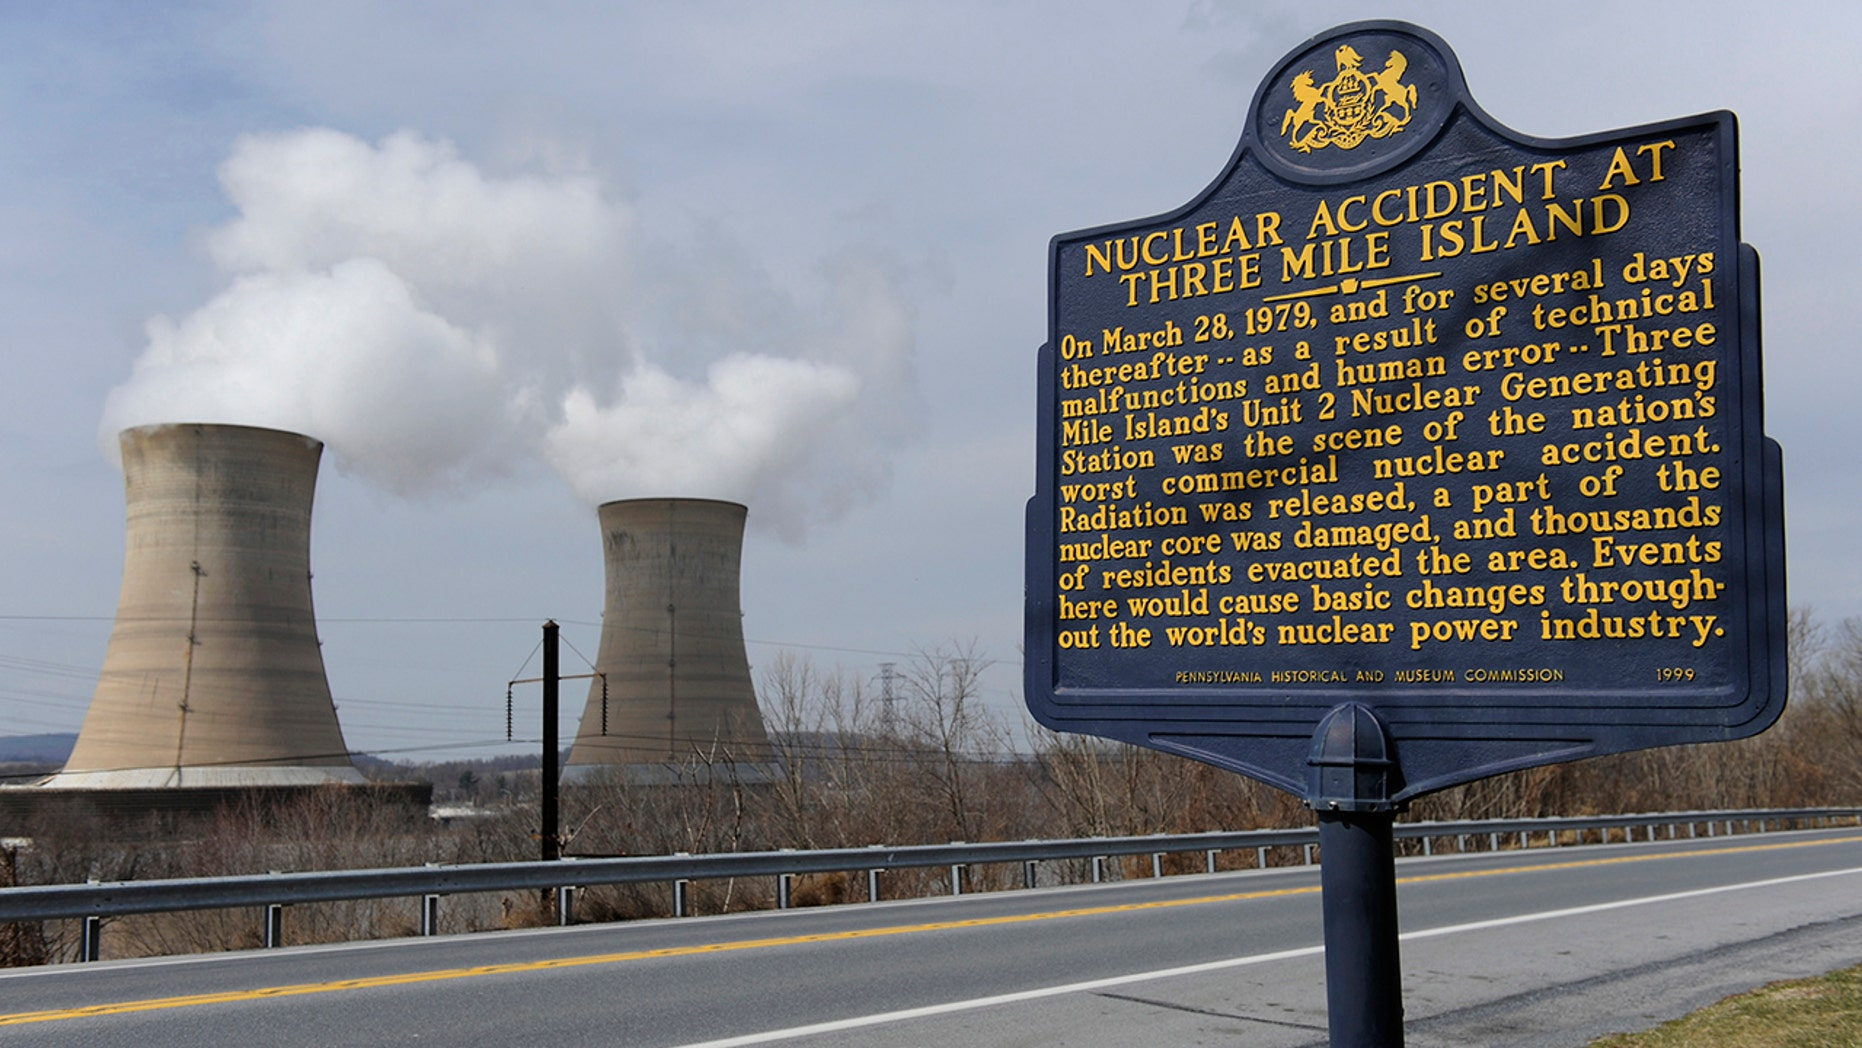 A sign marks the Three Mile Island nuclear power plant, where the U.S. suffered its most serious nuclear accident in 1979, in Middletown, Pennsylvania. (REUTERS/Jonathan Ernst)